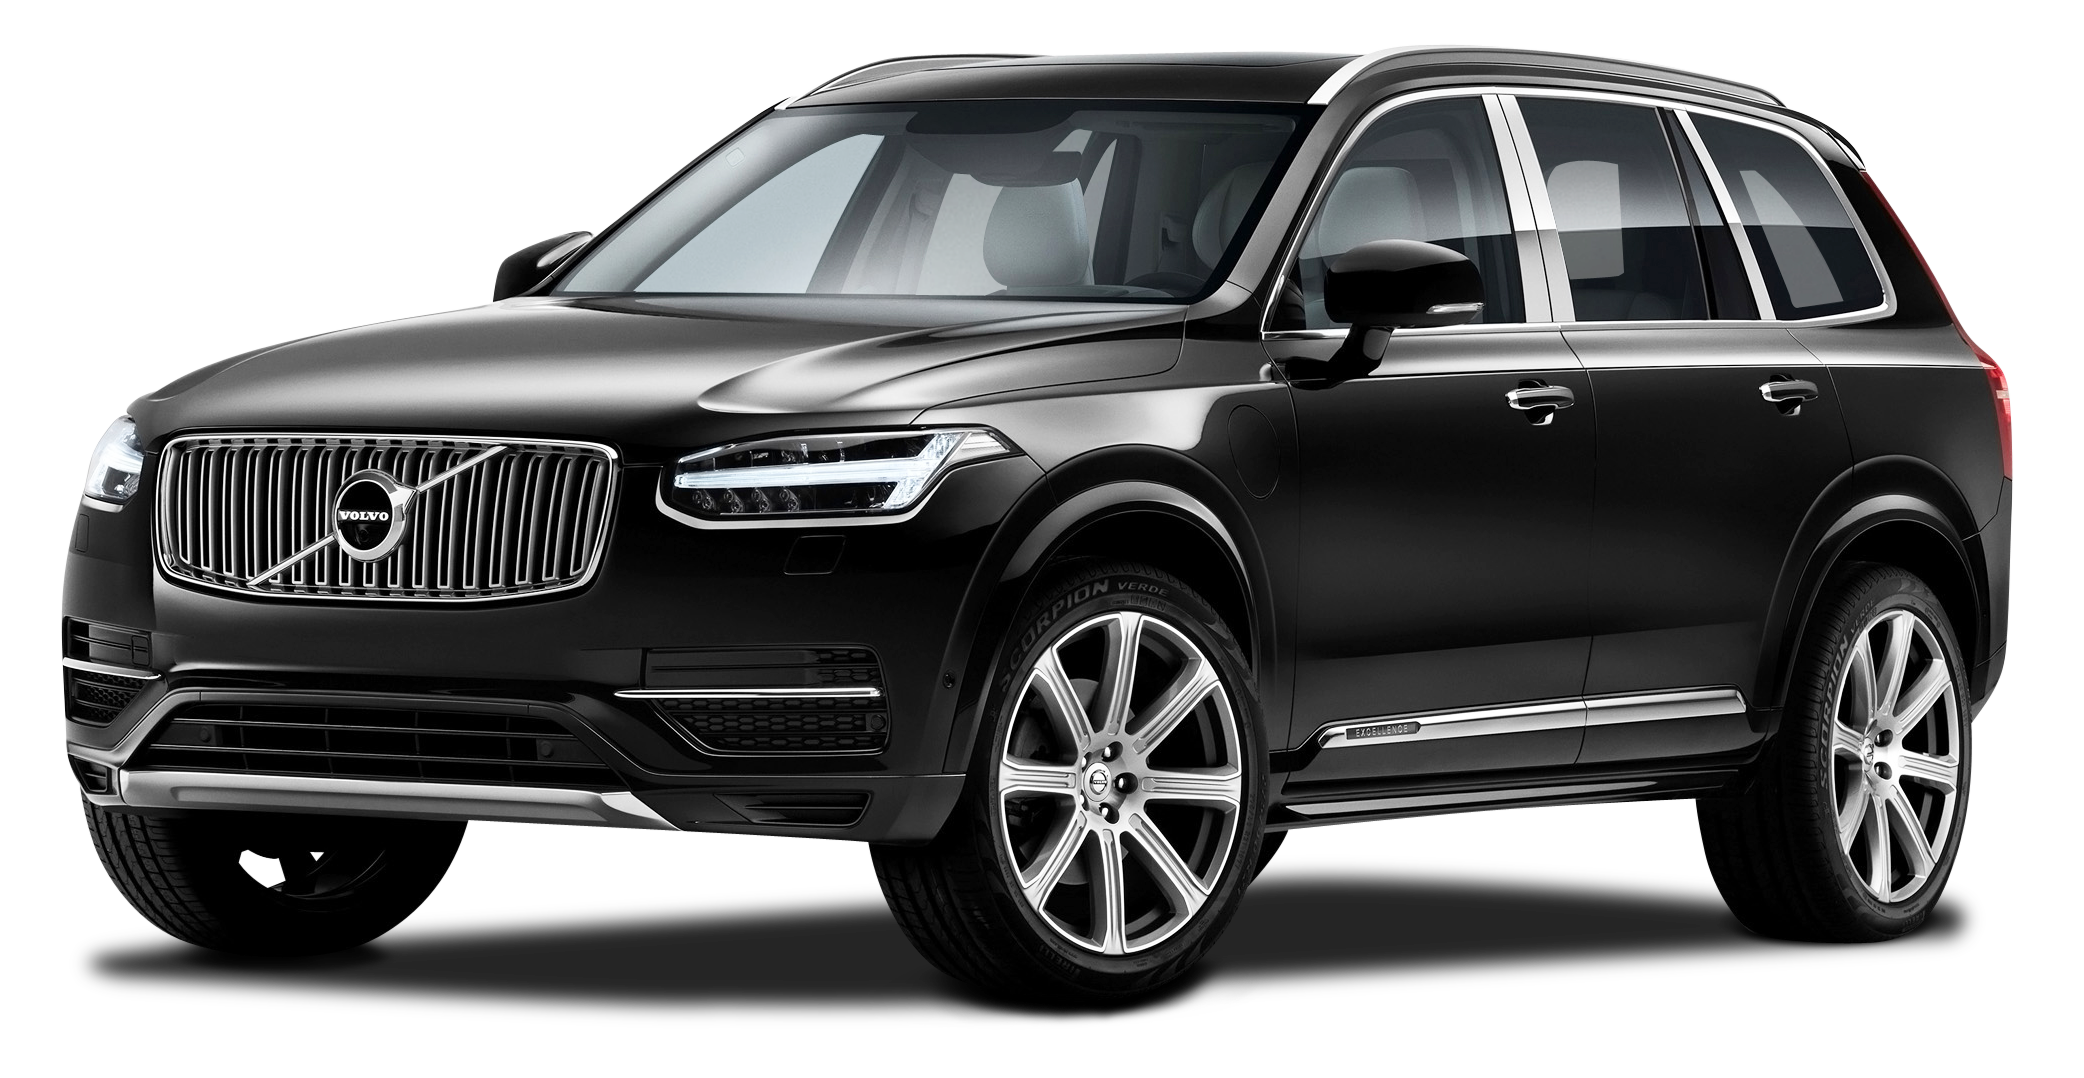 Volvo Xc90 Hd PNG Image